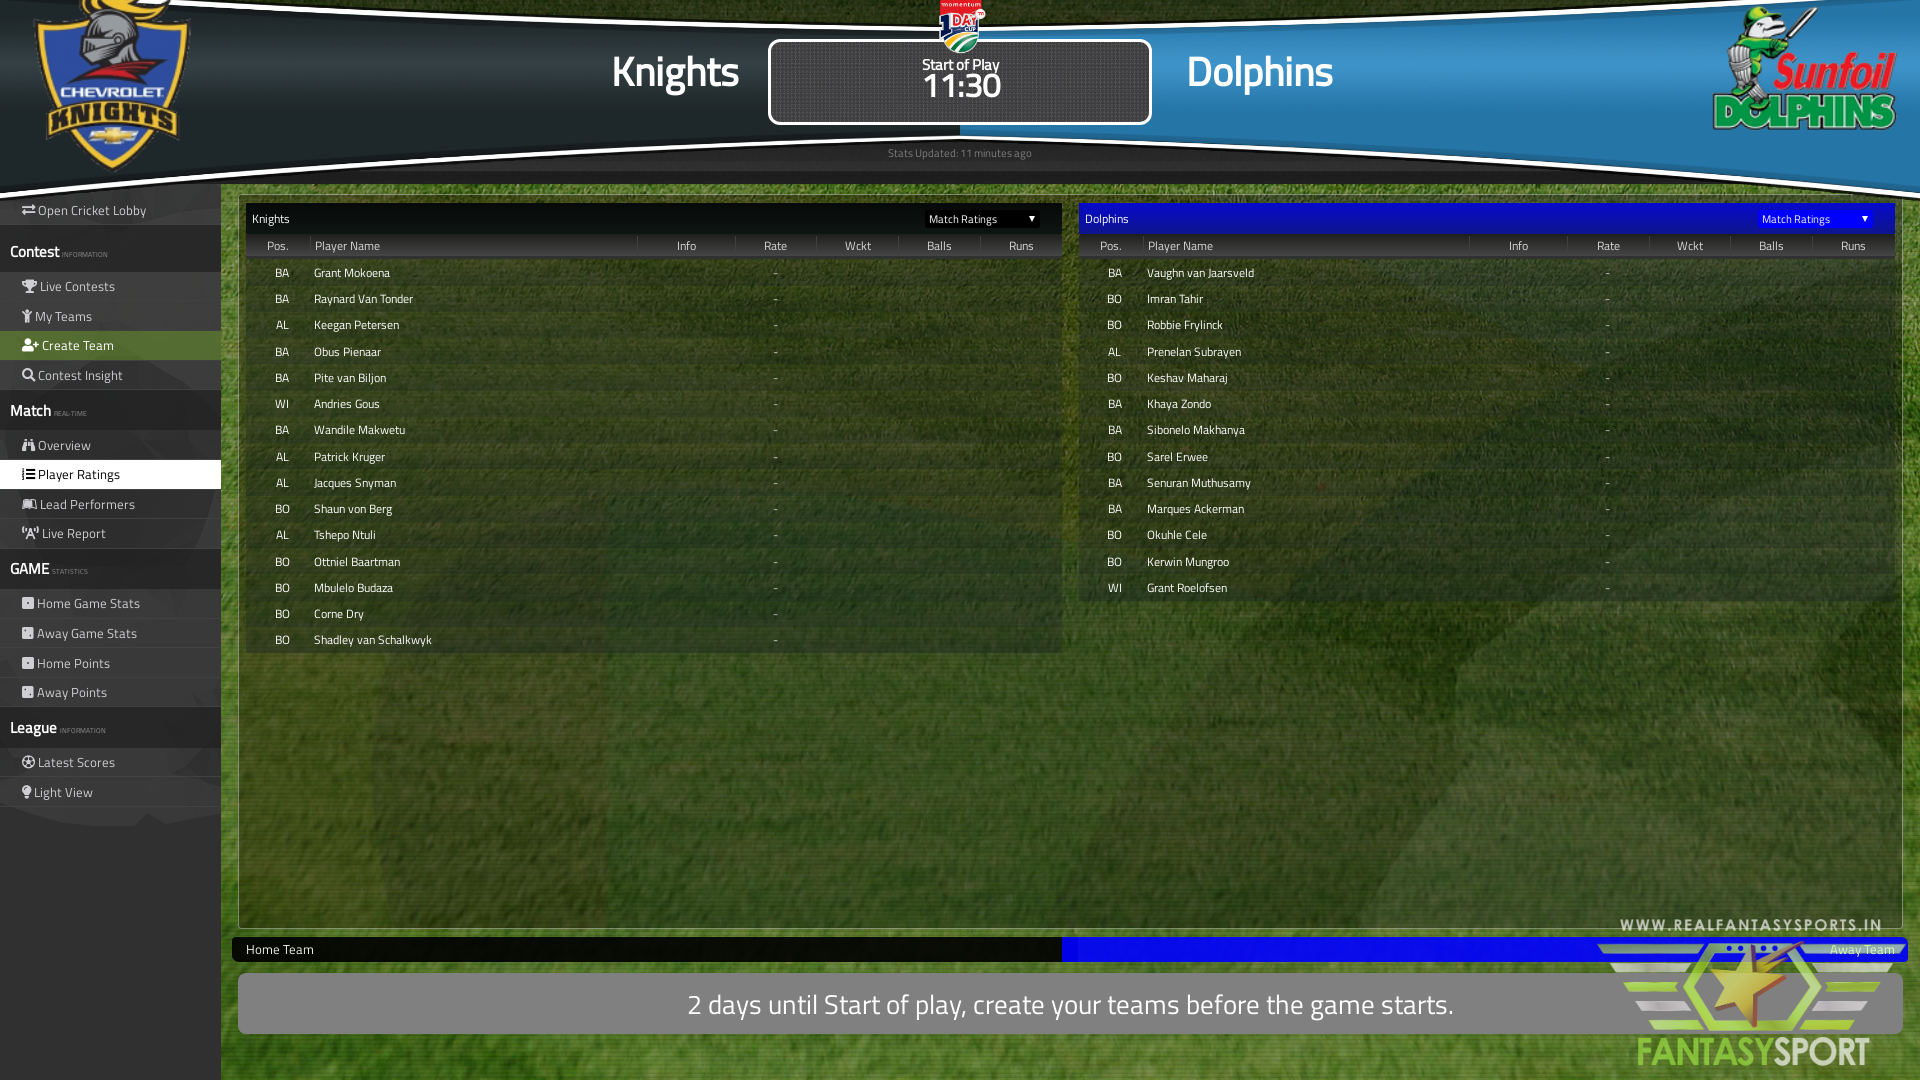 Fantasy Cricket Knights Vs Dolphins